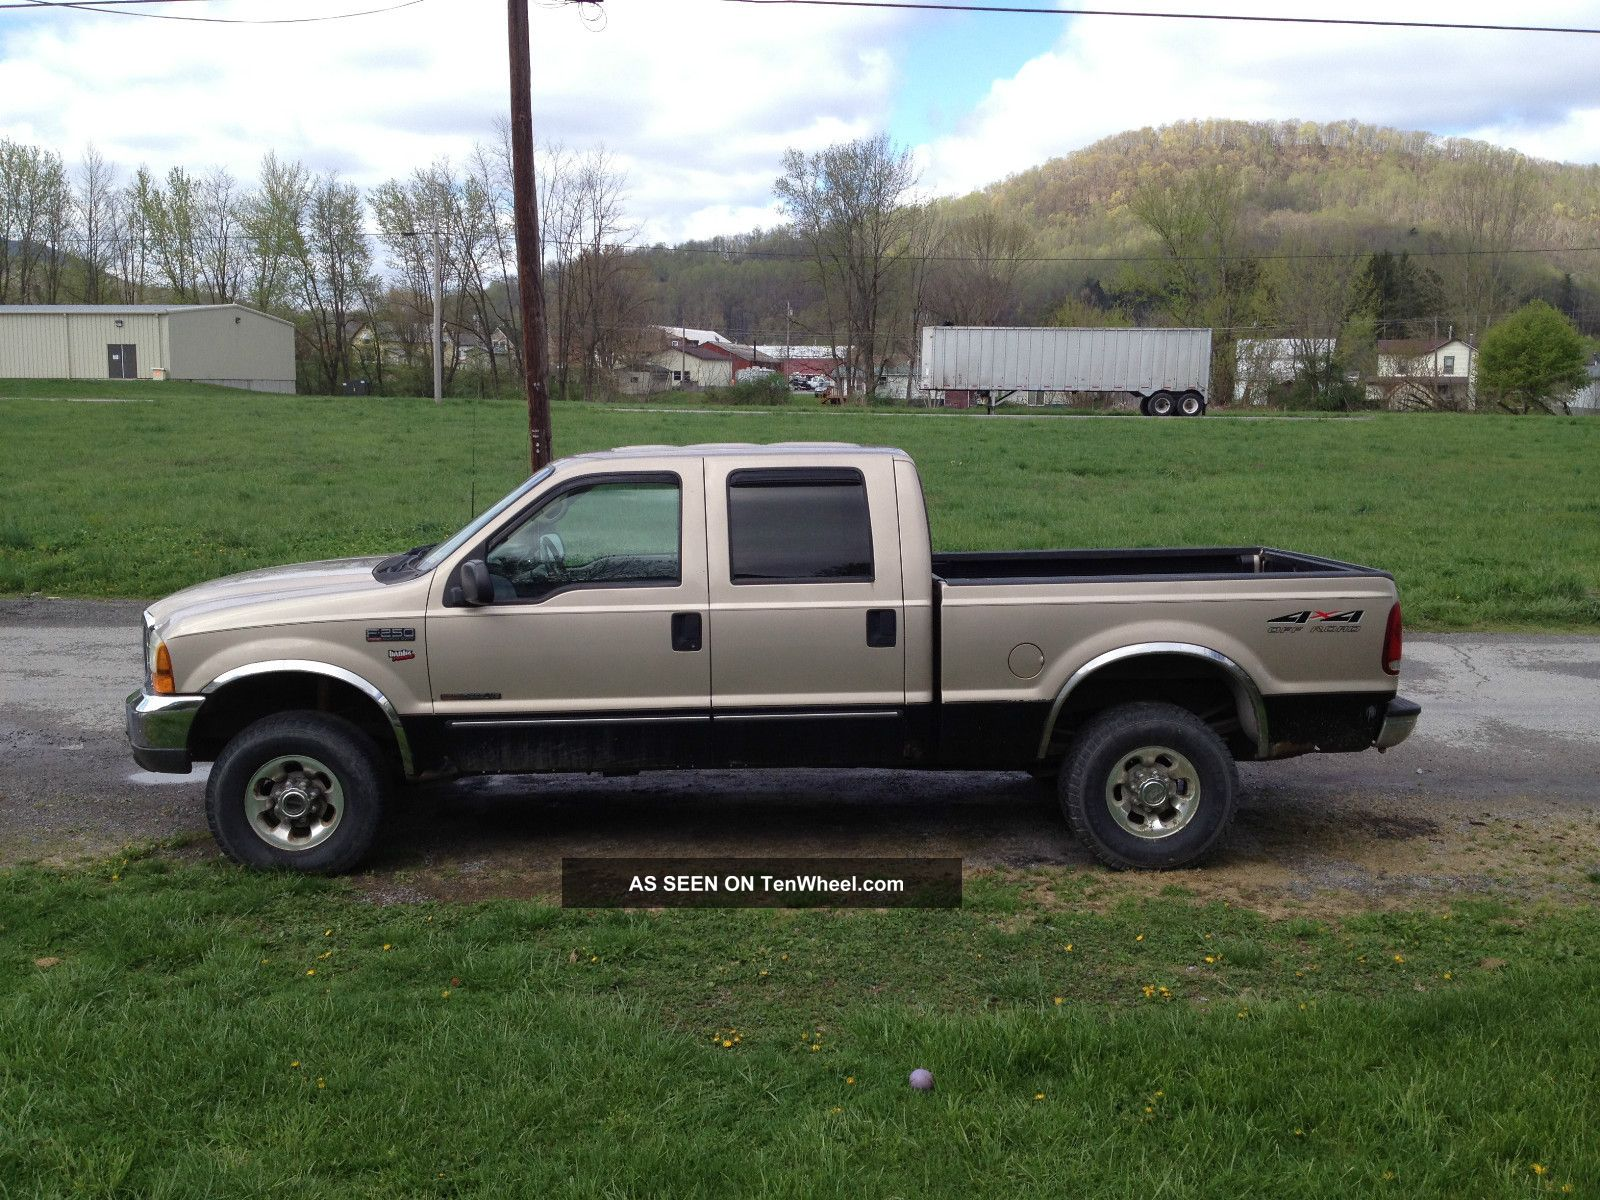 1999 ford f250 duty lariat 7 3 powerstroke turbo diesel crew cab 4x4. Black Bedroom Furniture Sets. Home Design Ideas